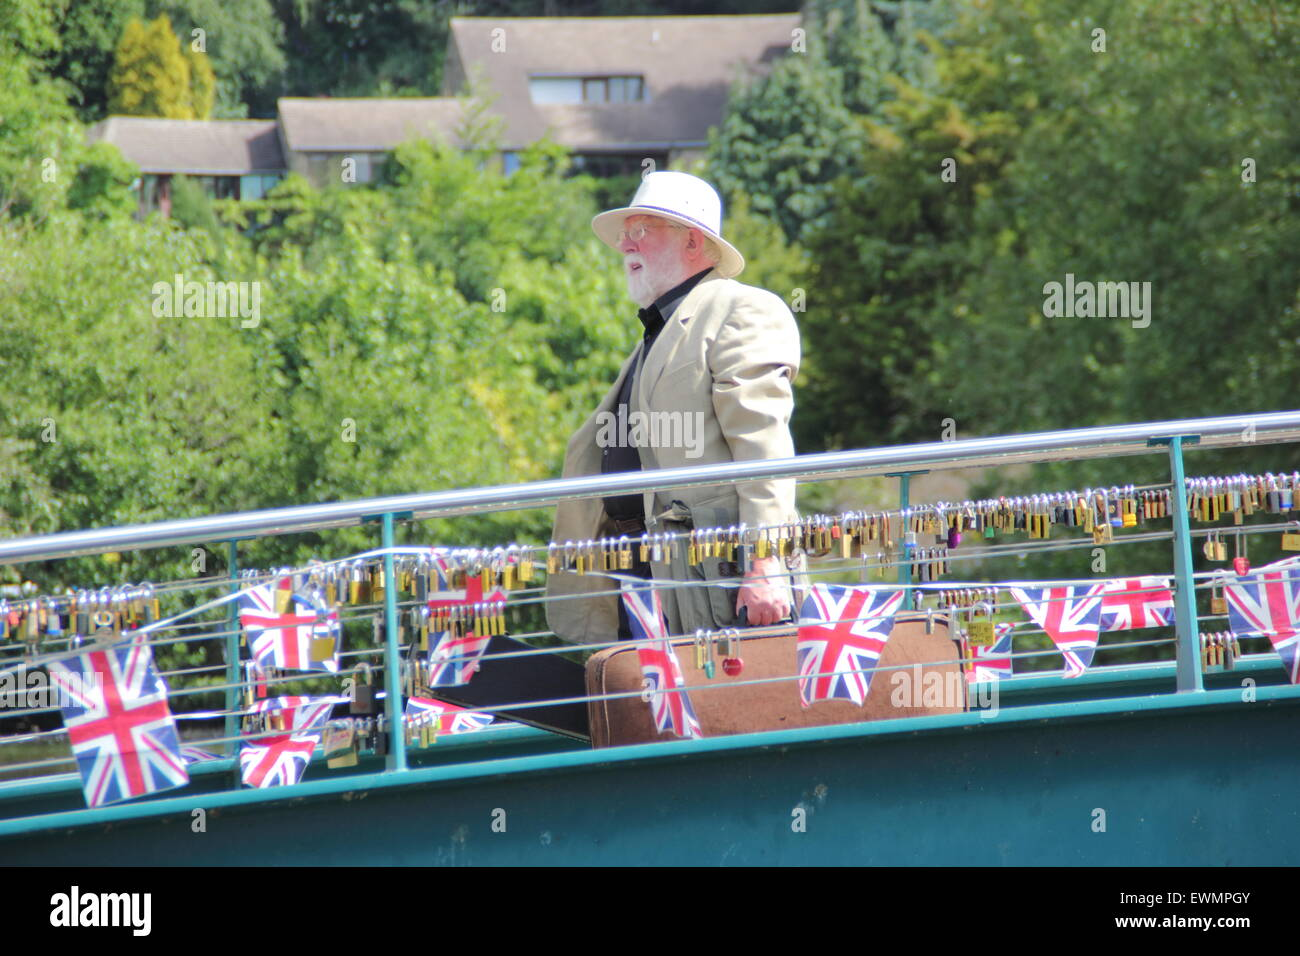 A man wearing traditional British summer attire carries cases across a bunting strewn bridge in Bakewell, England - Stock Image